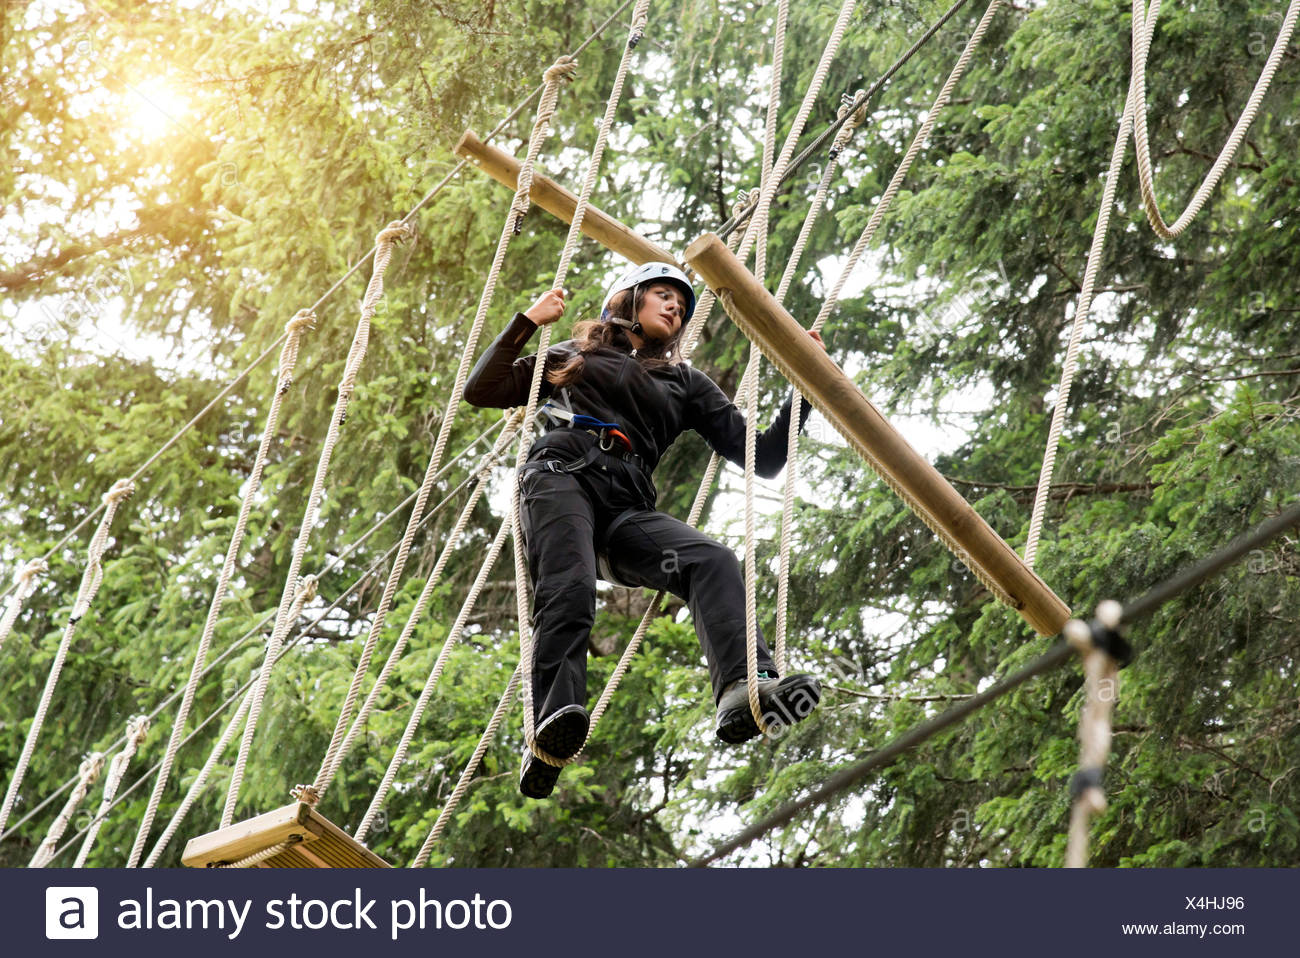 Teenage girl on high rope course - Stock Image